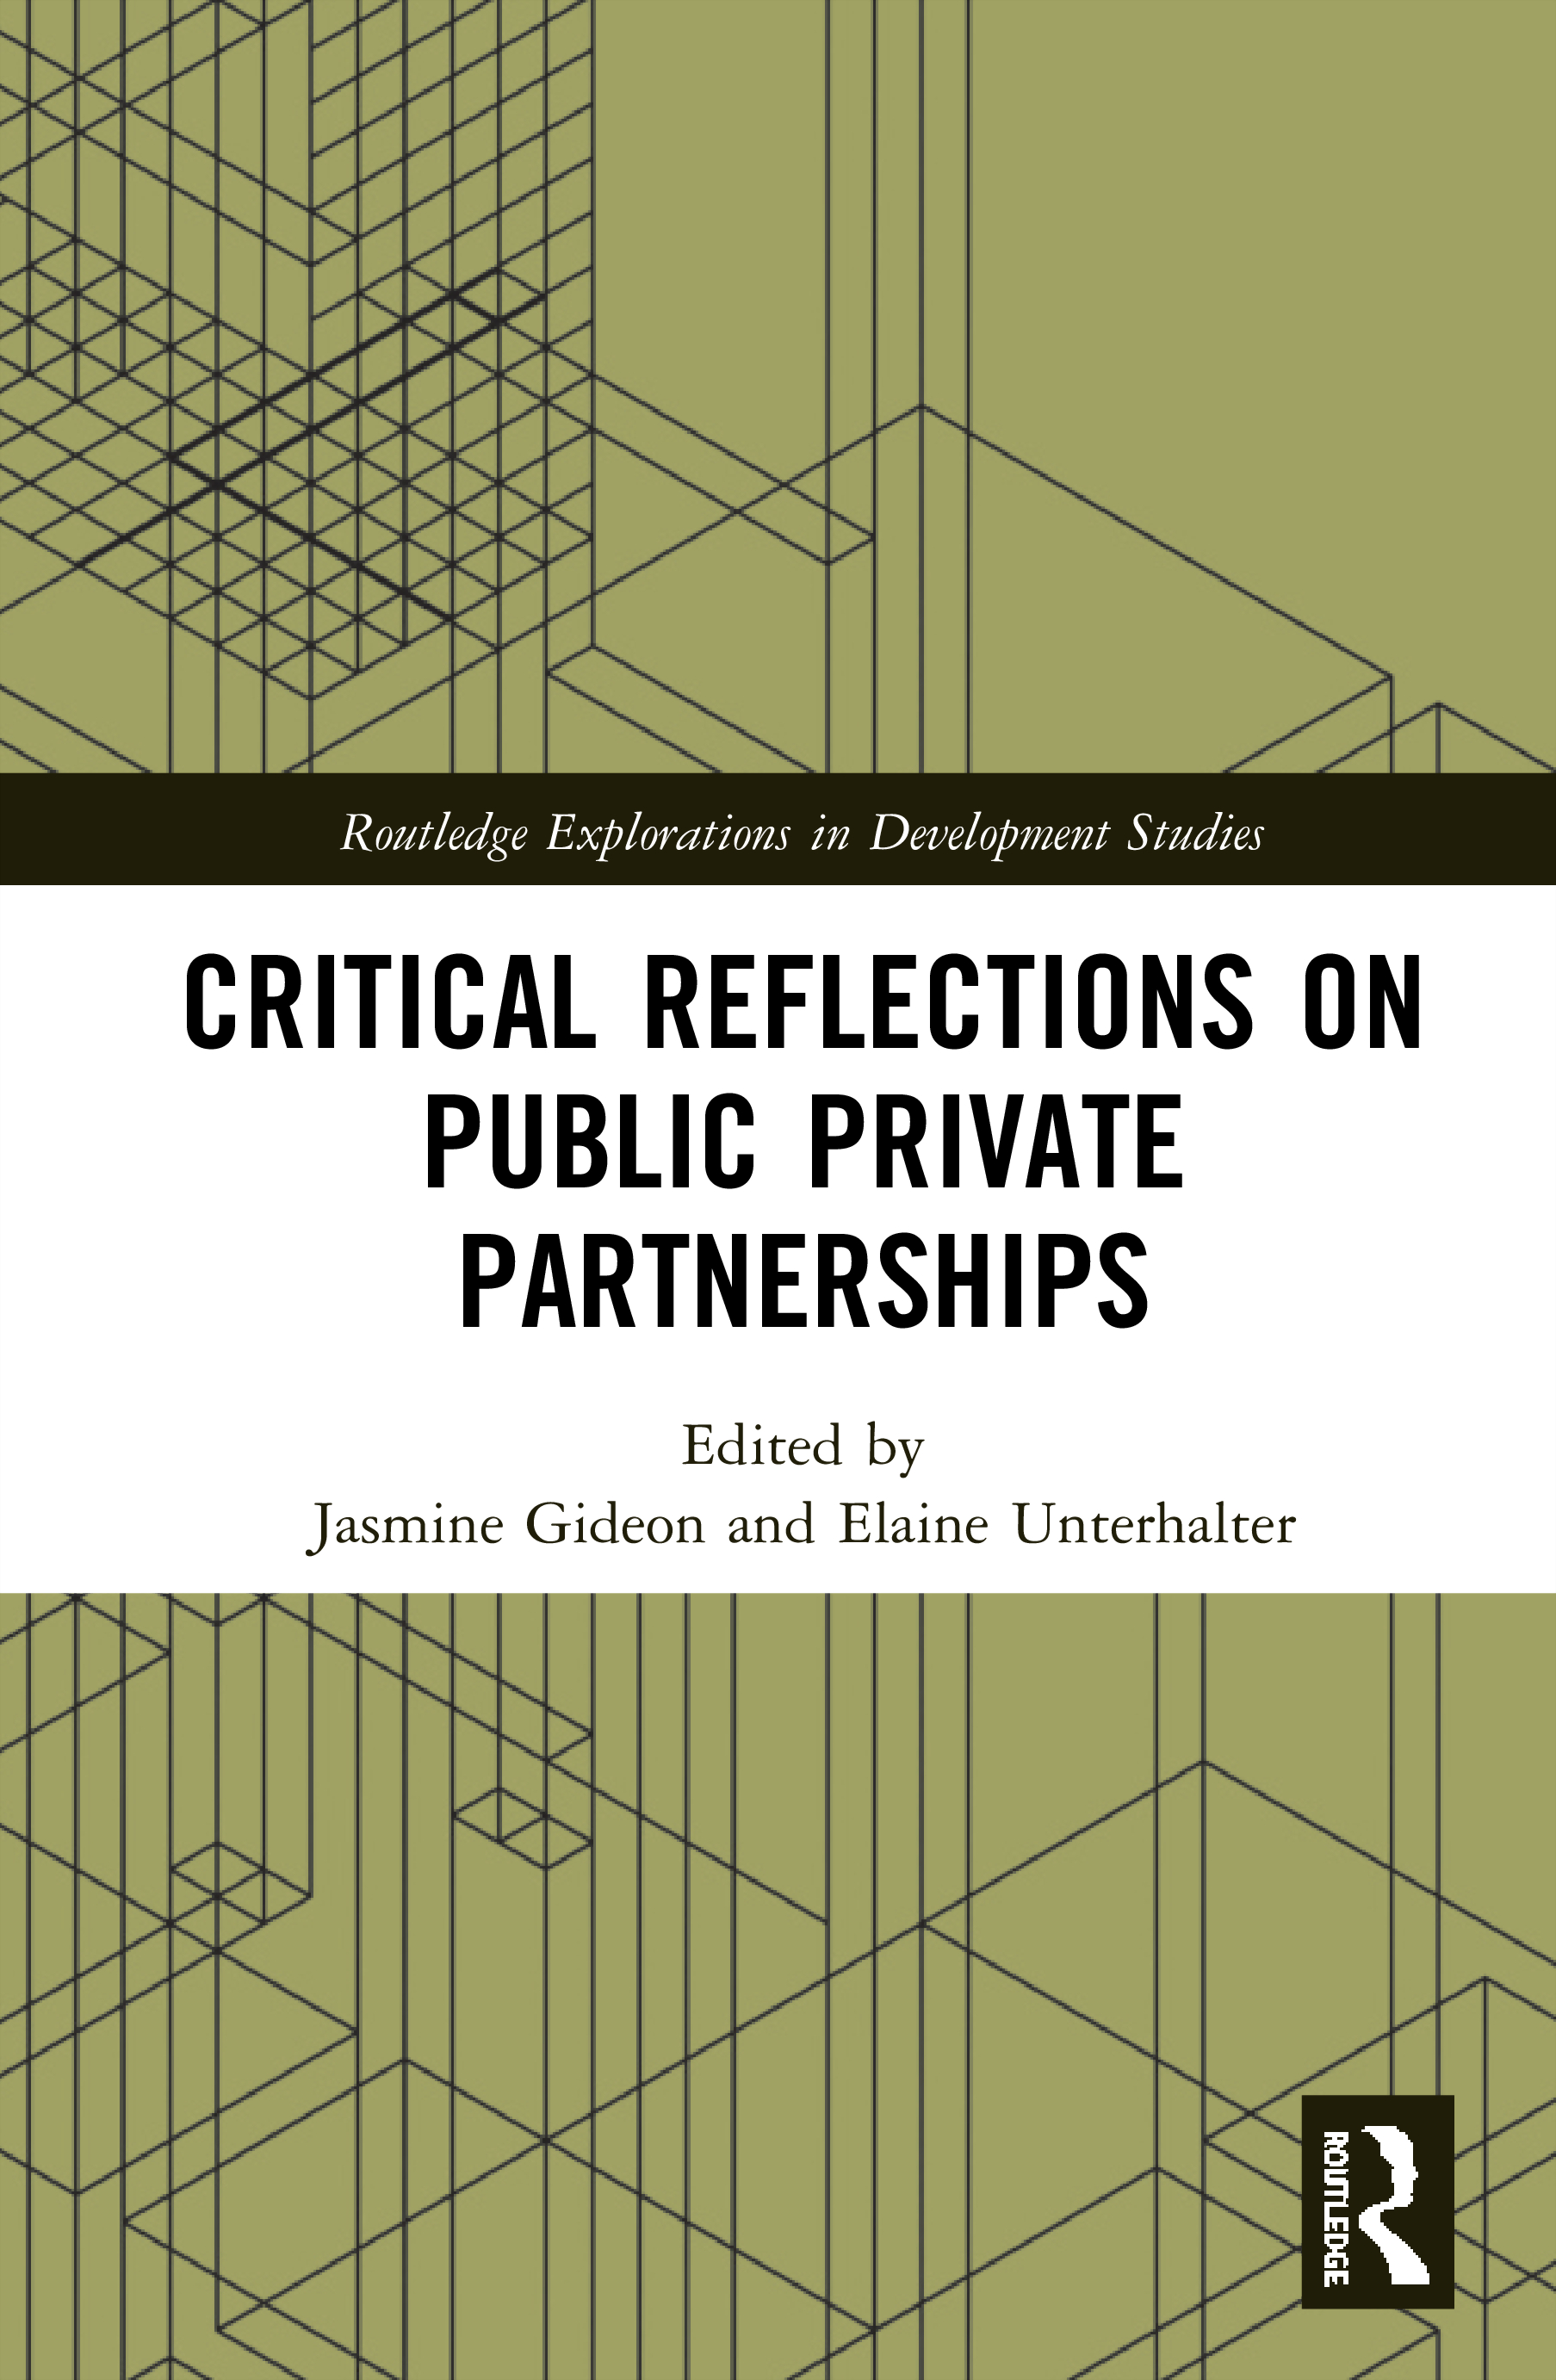 Critical Reflections on Public Private Partnerships